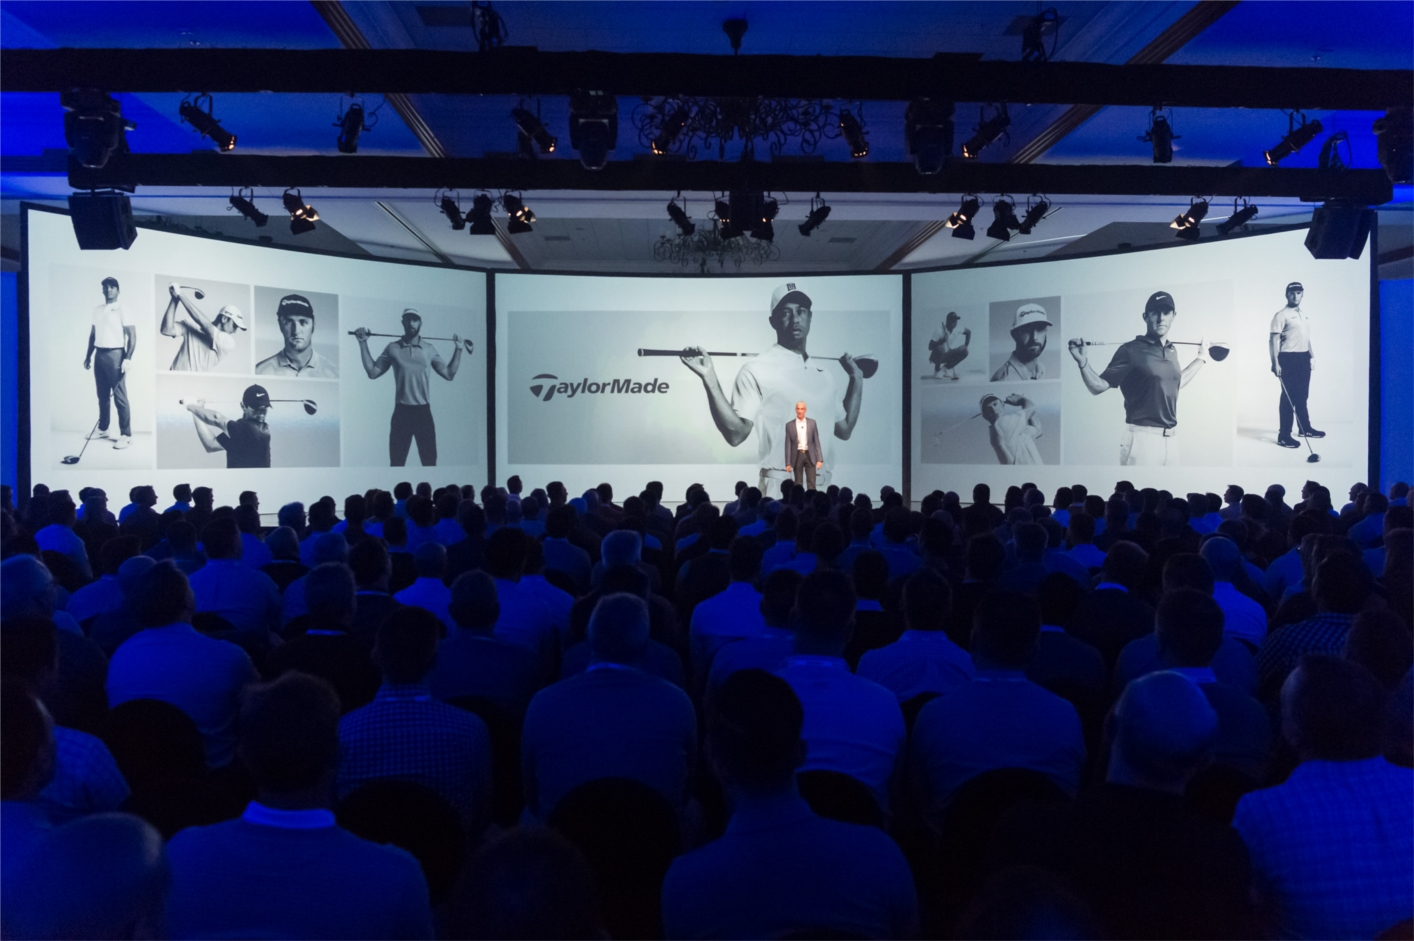 TaylorMade All-Employee Launch Event